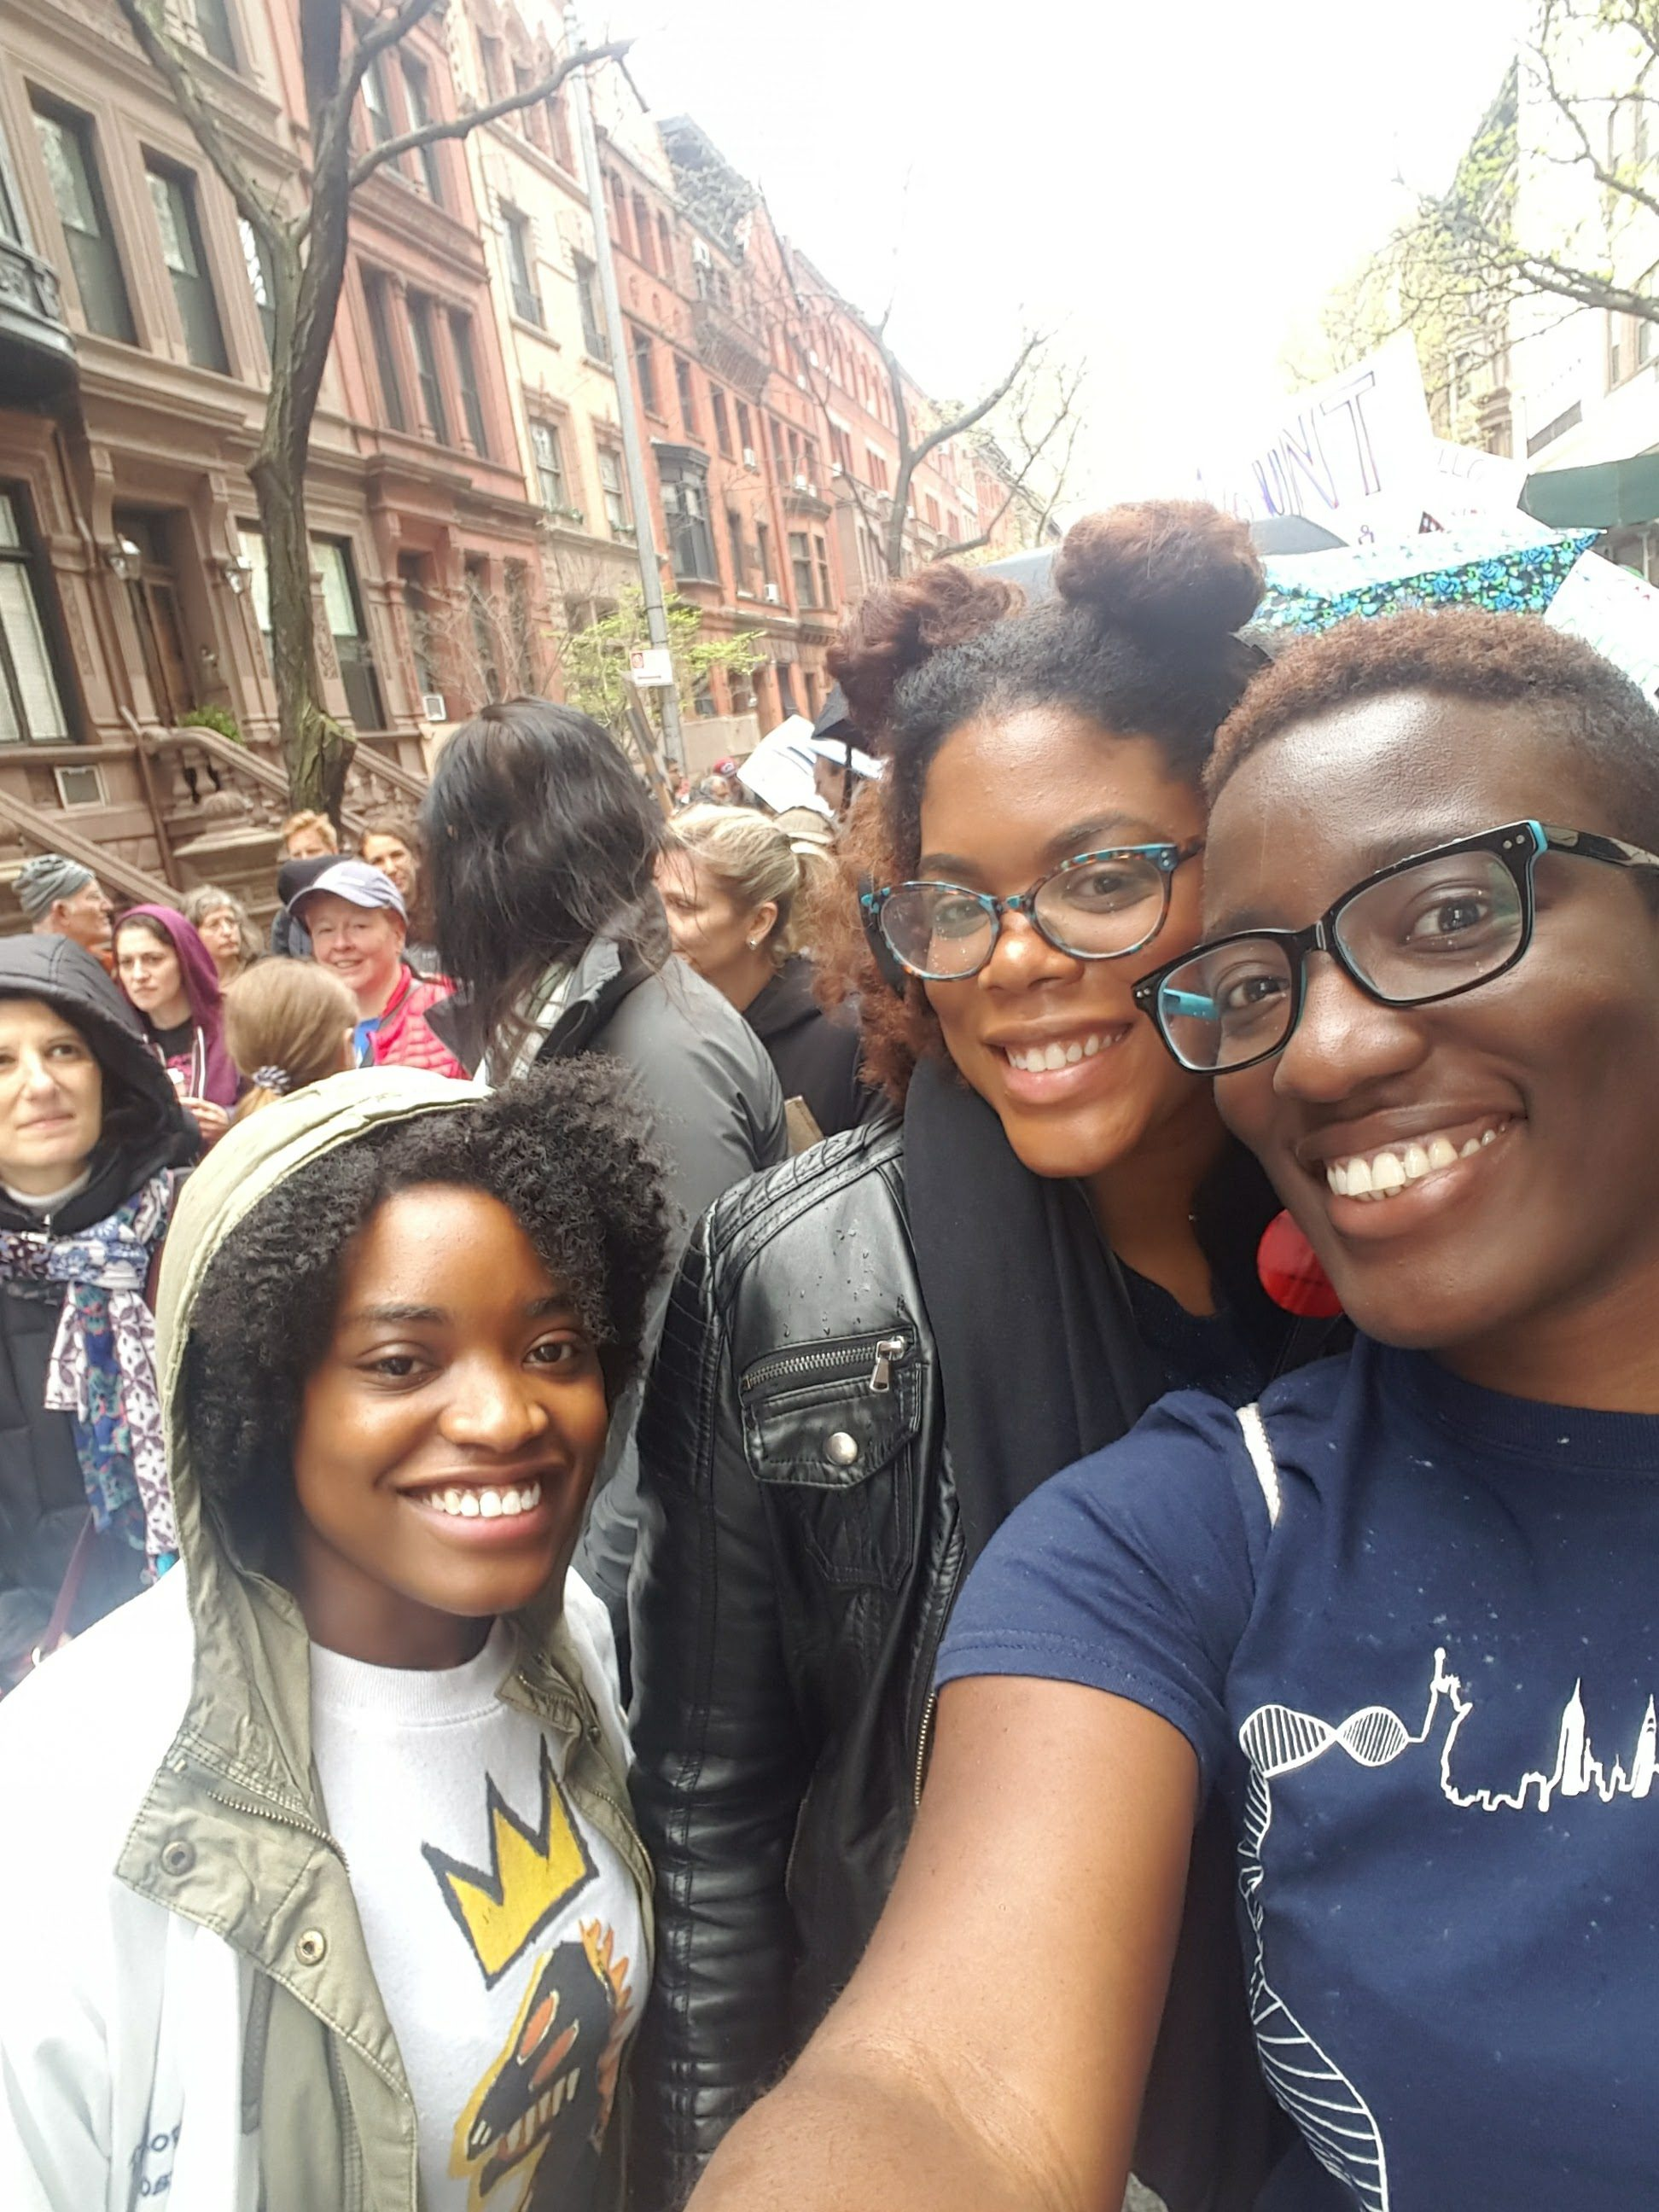 SEOS Board Members, Jennielle, Justine and Ezi at the March